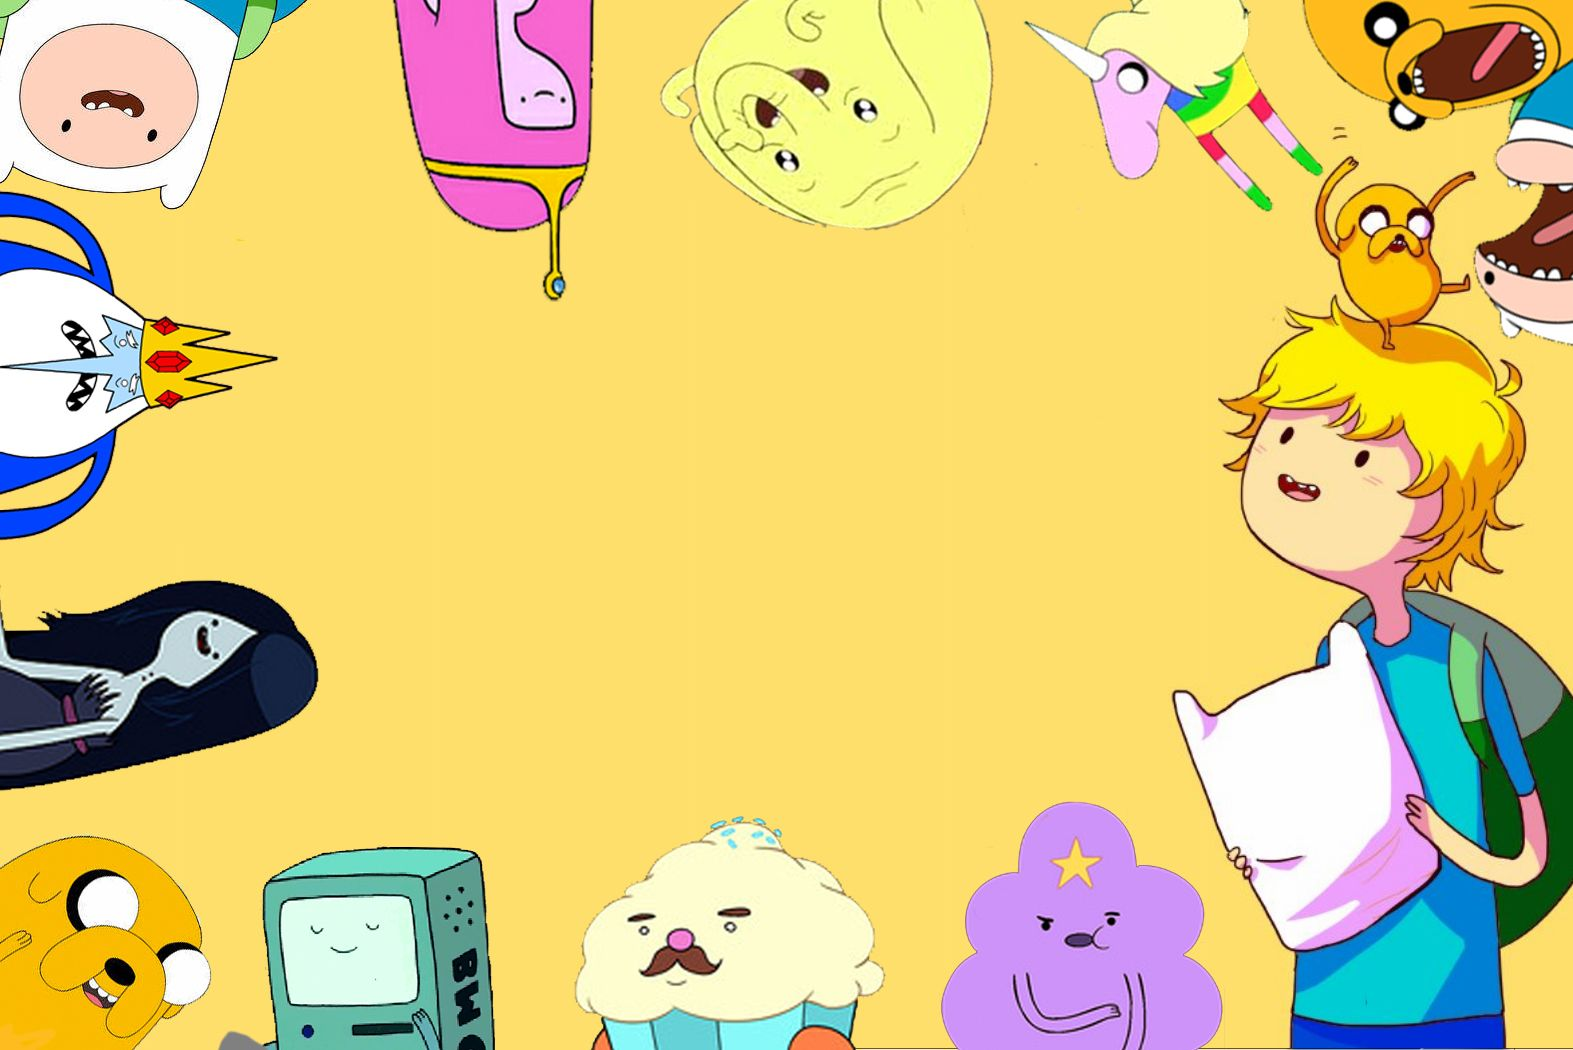 Finn faces adventure time wallpaper full hd wallpapers 1573x1050px finn faces adventure time wallpaper full hd wallpapers 1573x1050px altavistaventures Image collections